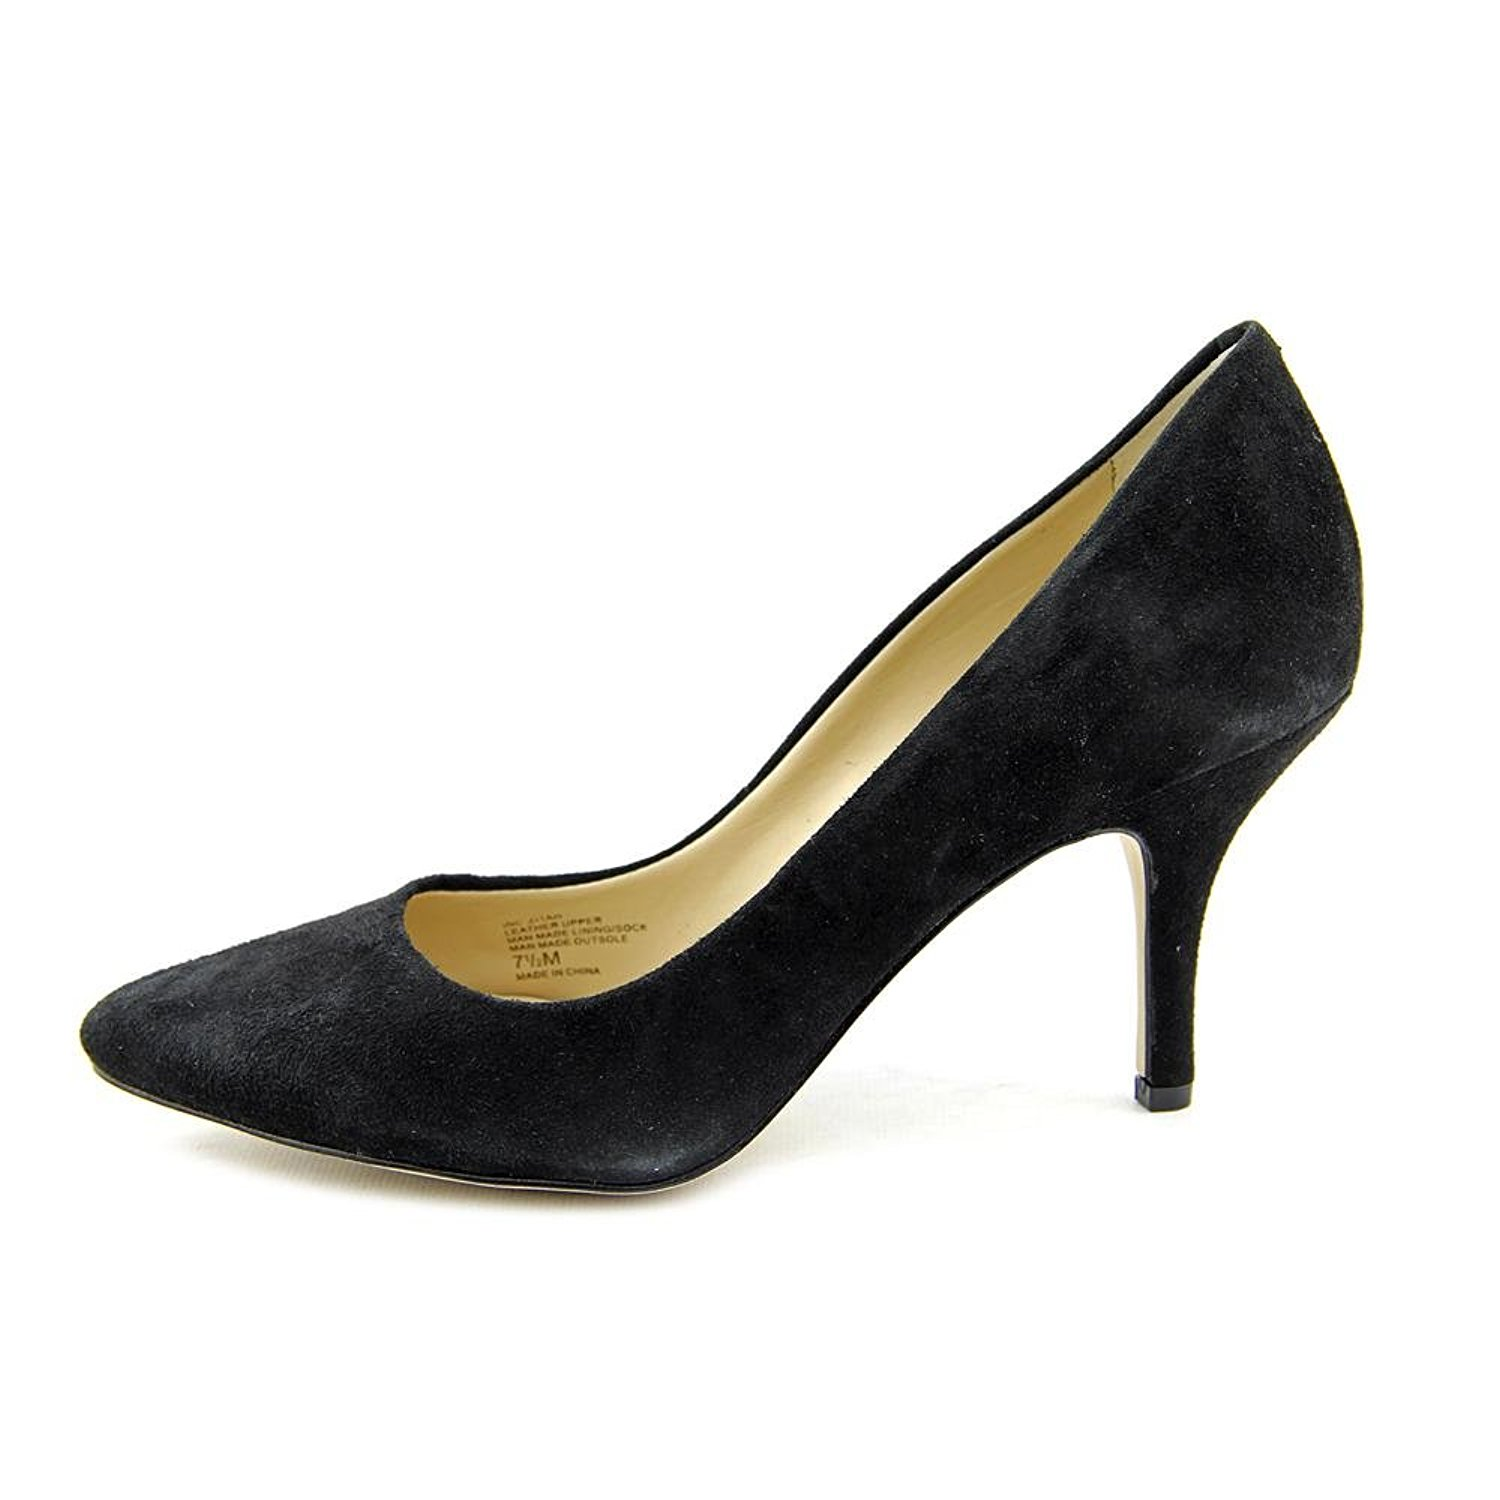 98d5df9fd276 INC International Concepts Womens Zitah Pointed Toe